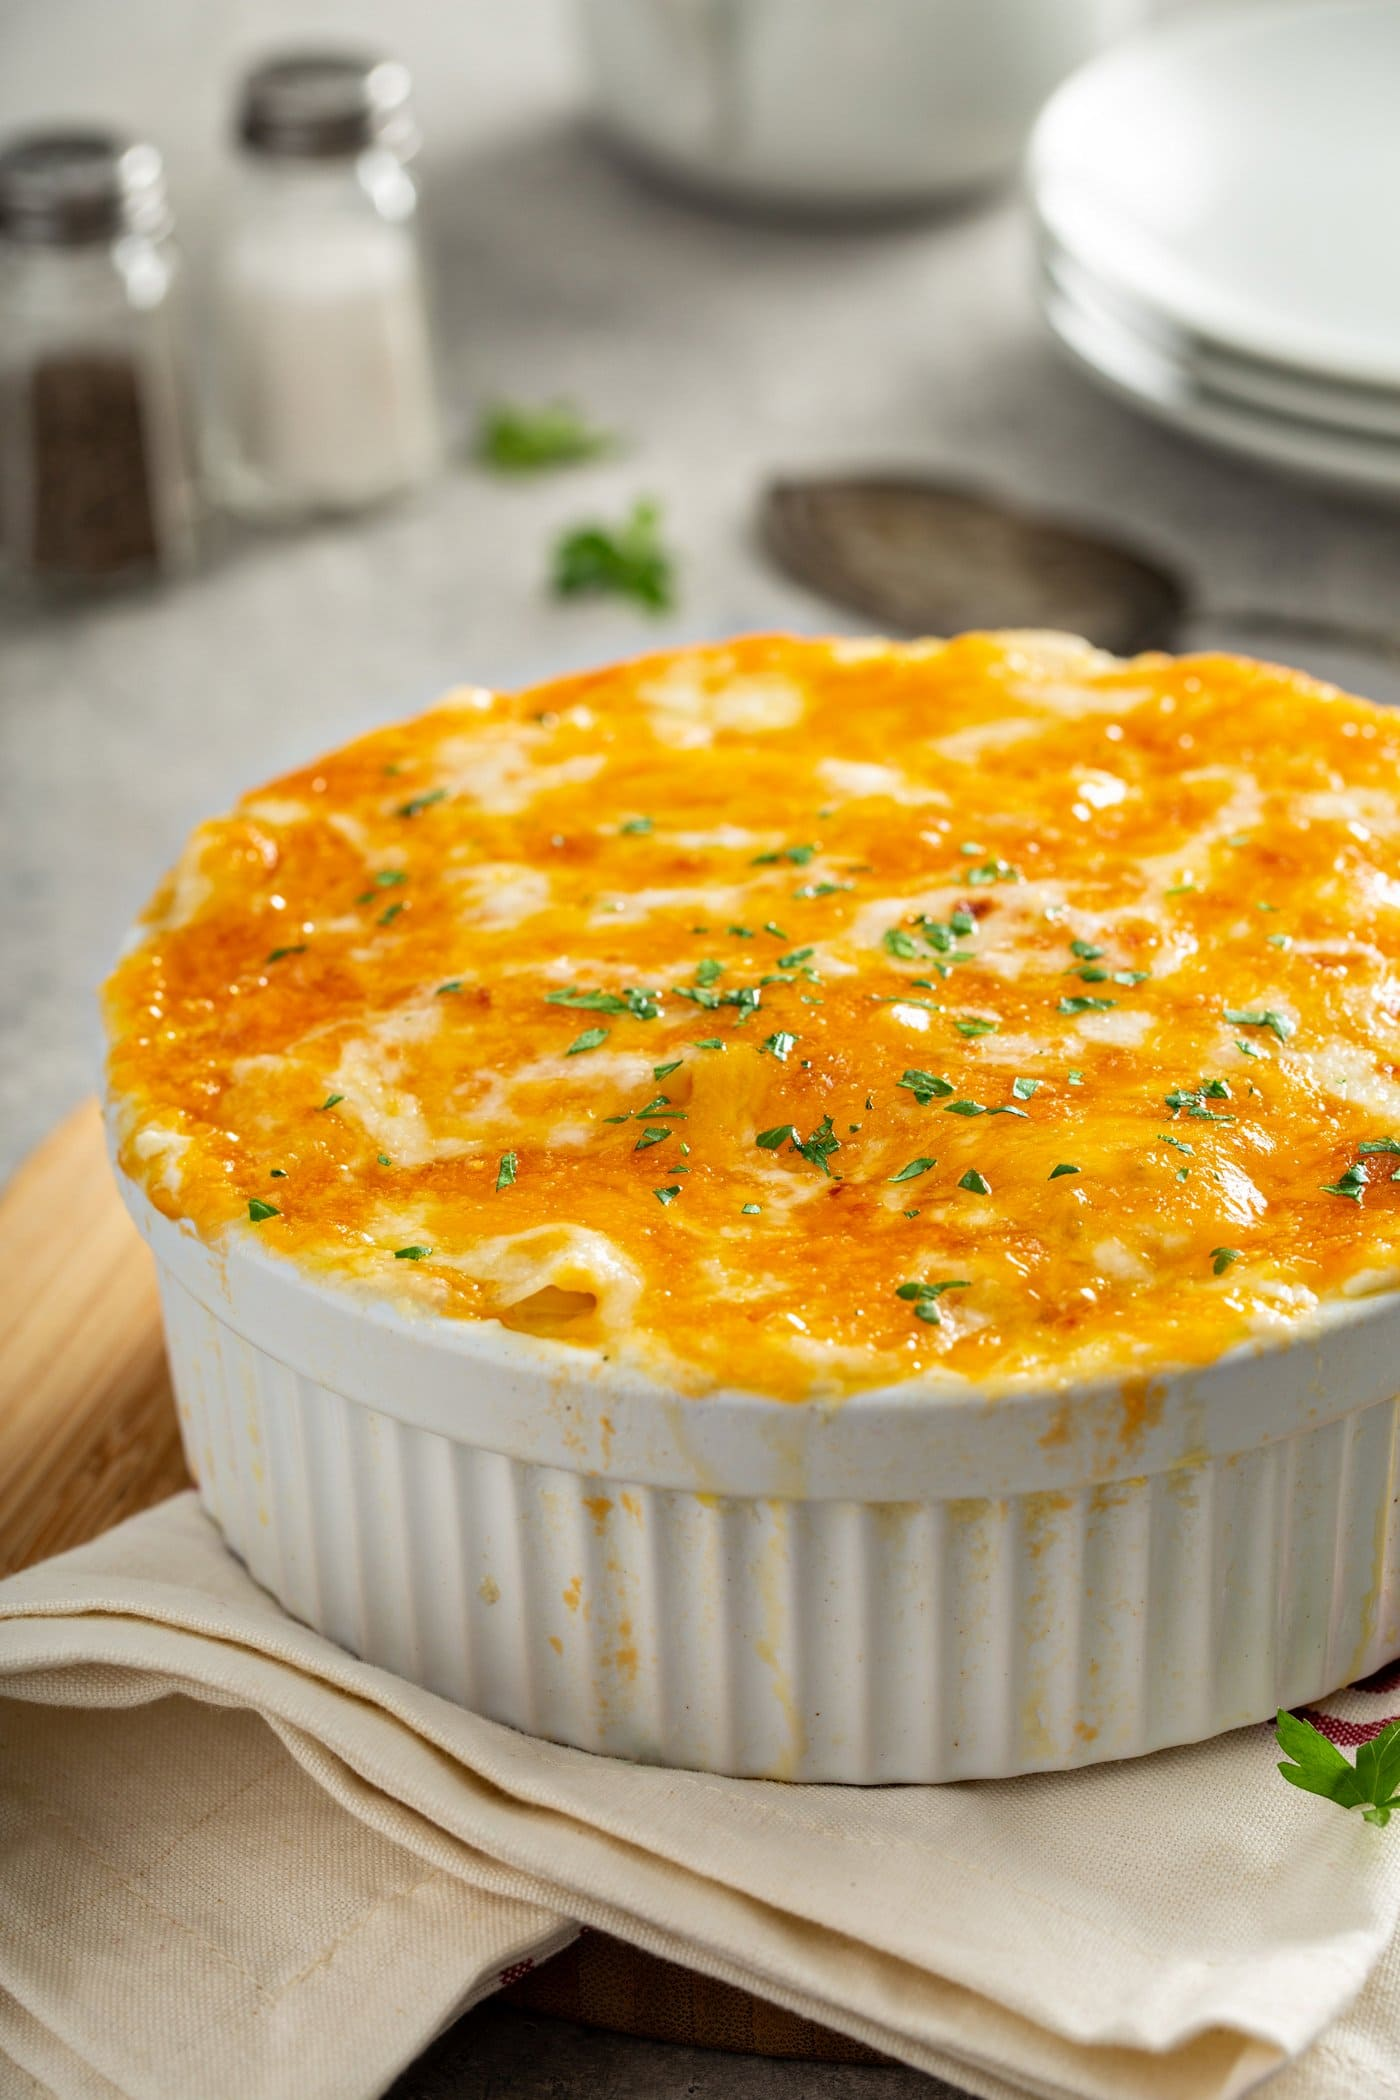 A casserole dish full of cheesy potatoes. The cheese is melted and toasted.